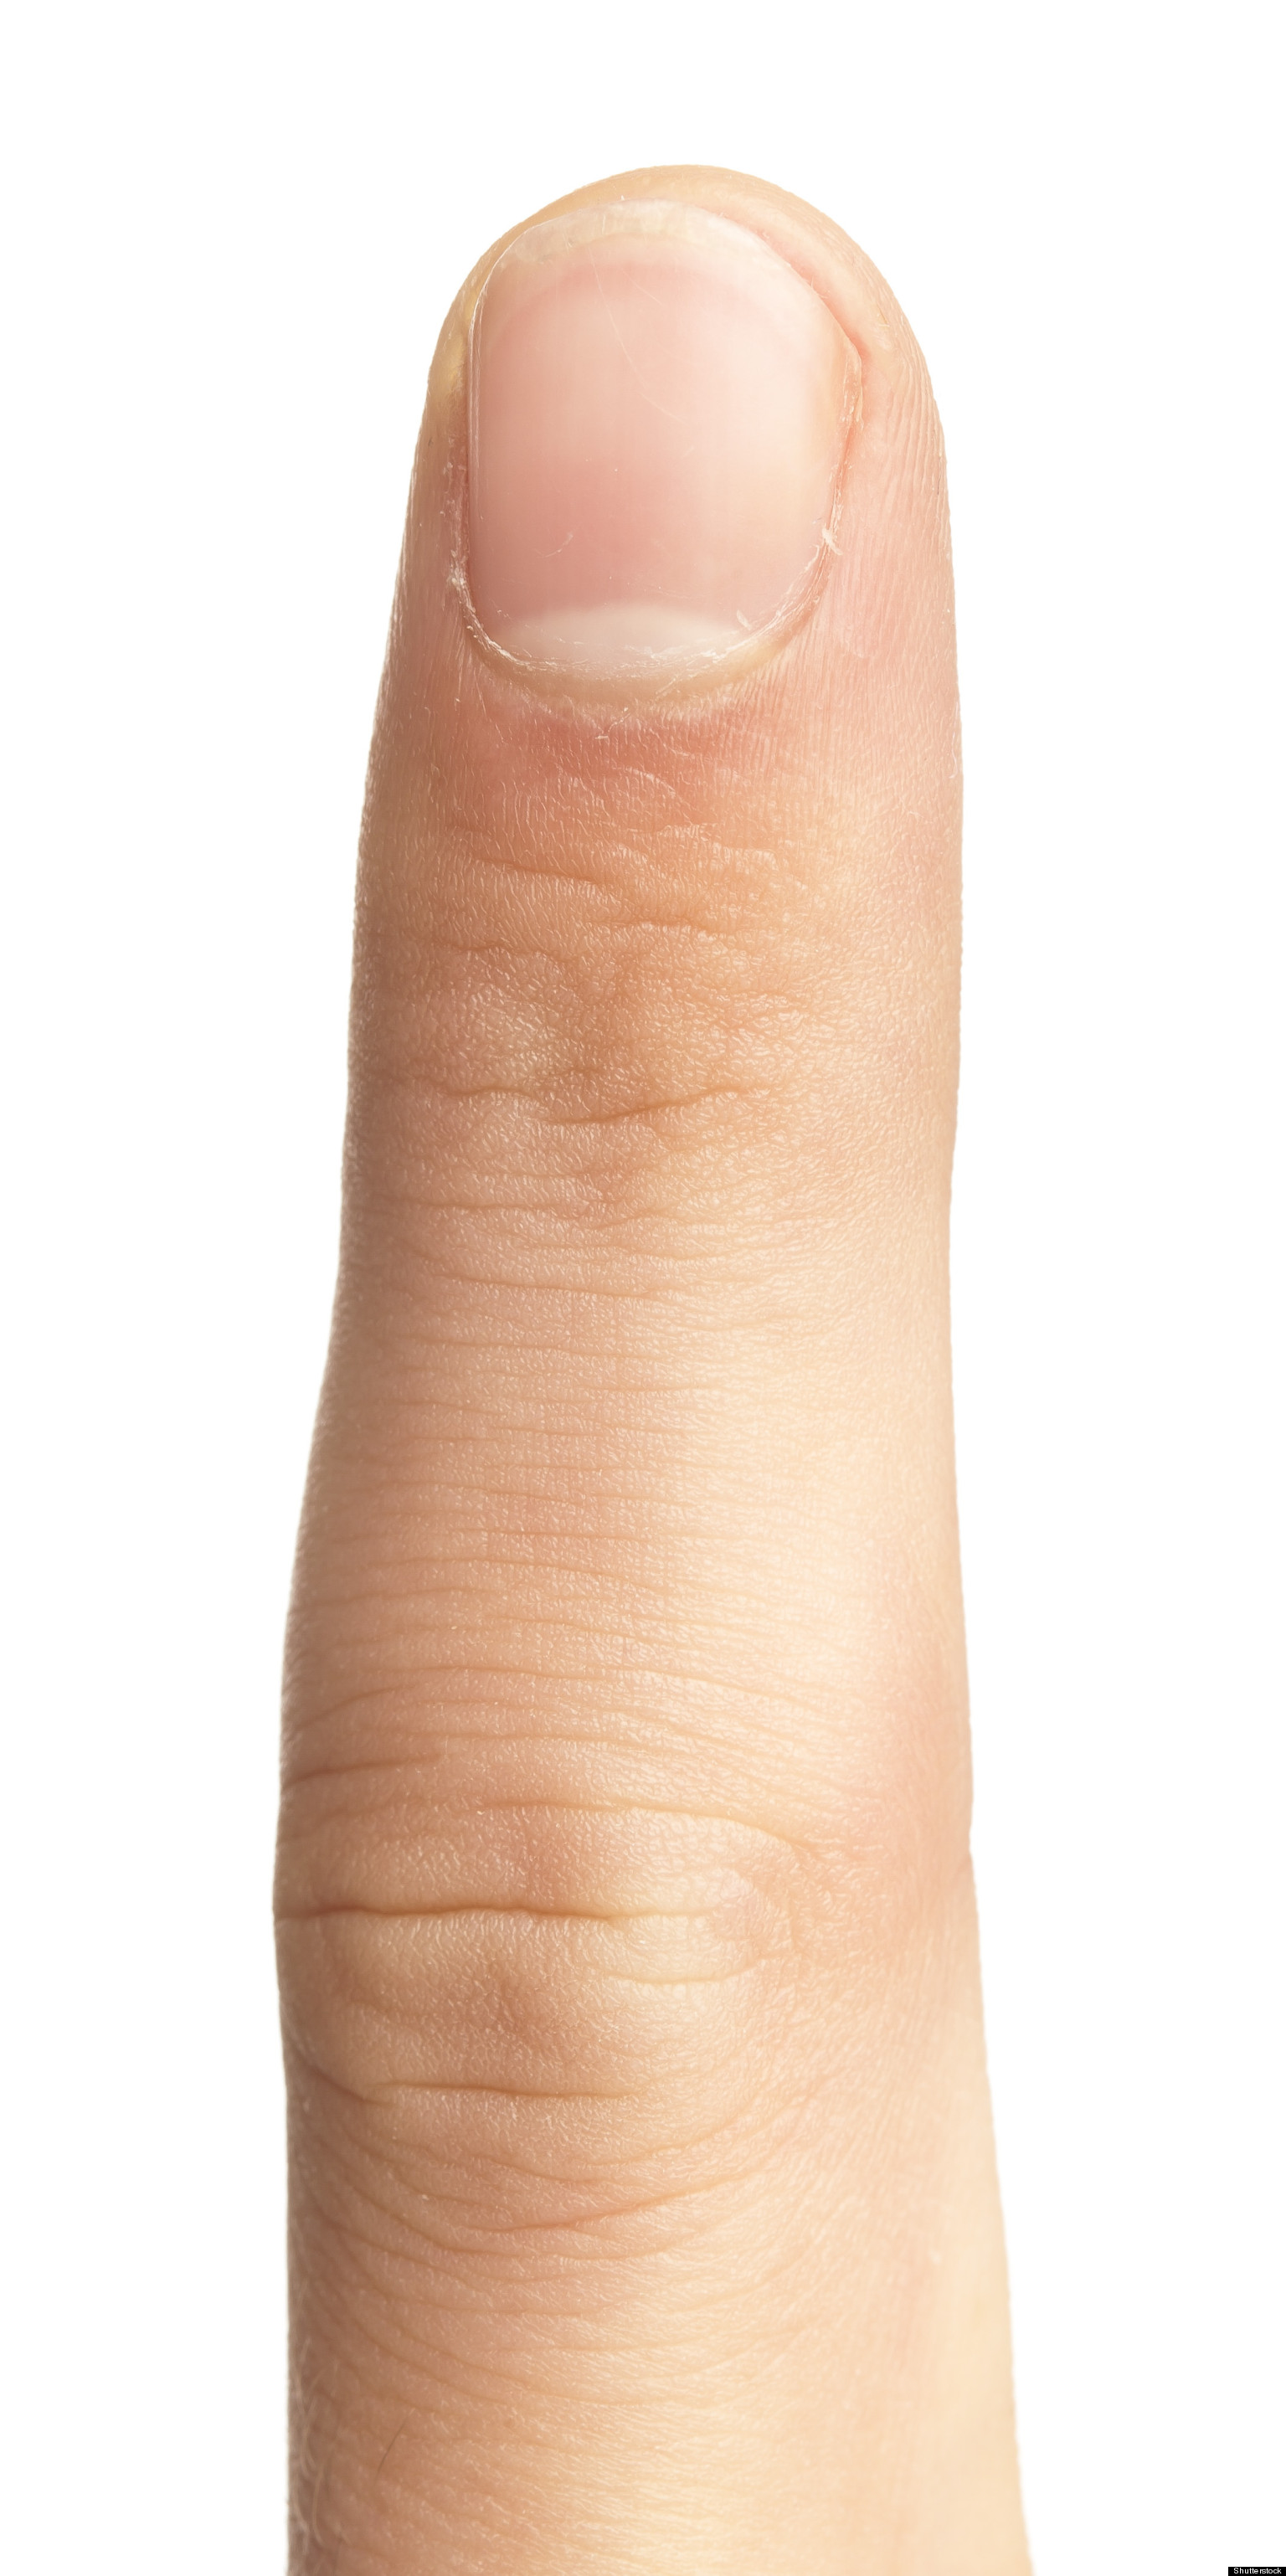 7 Things Your Nails Can Tell You About Your Health | HuffPost